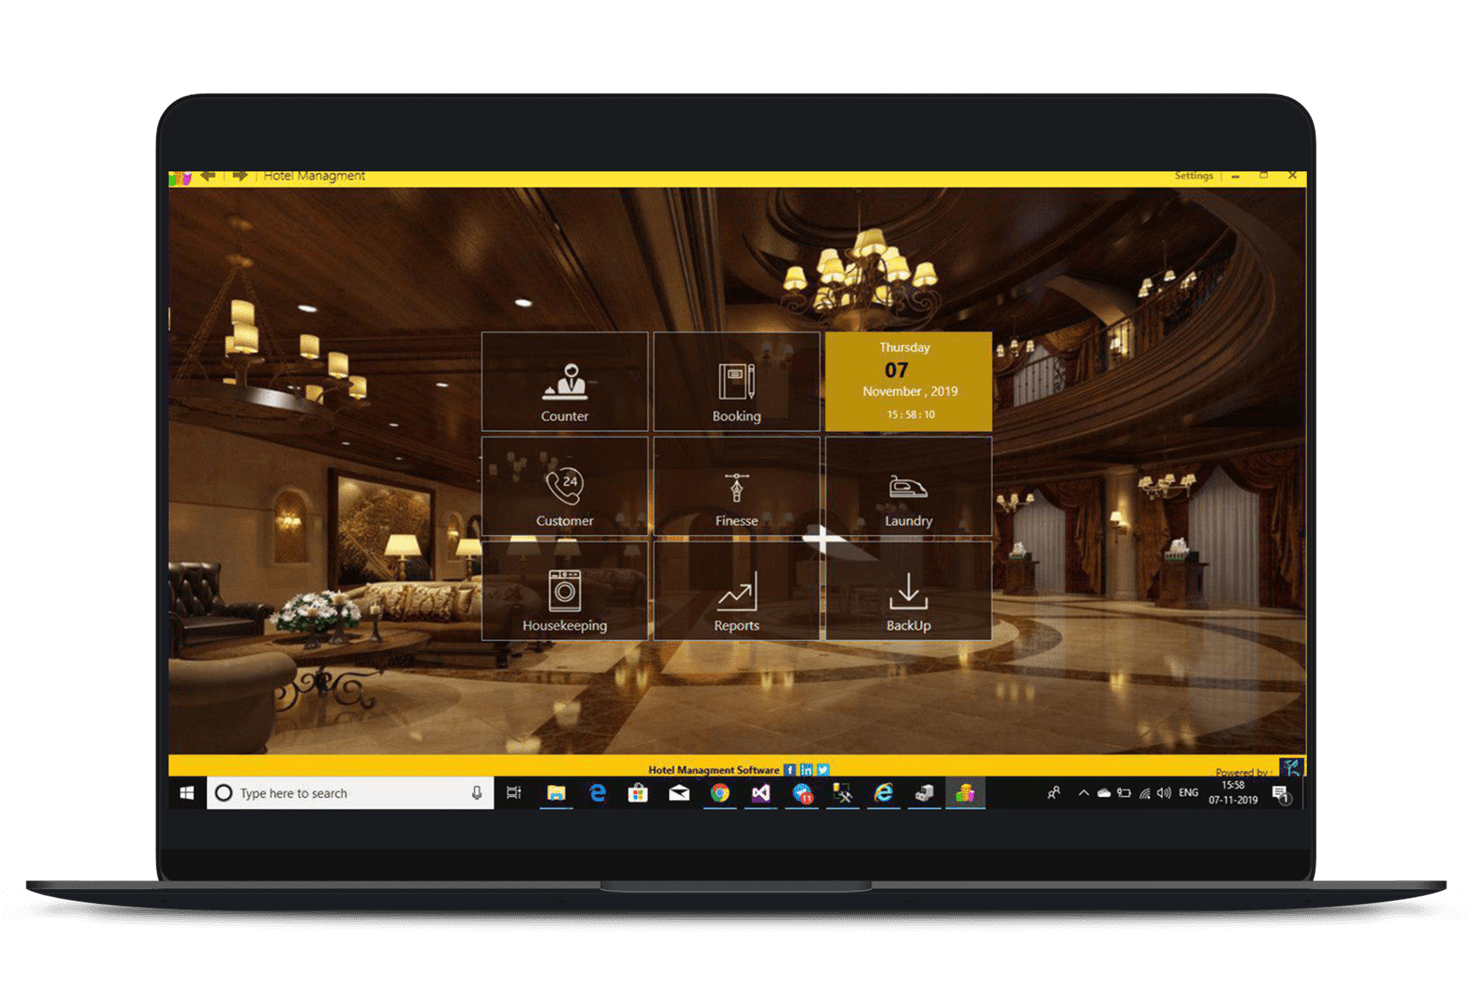 Brillsense Hotel Management Software